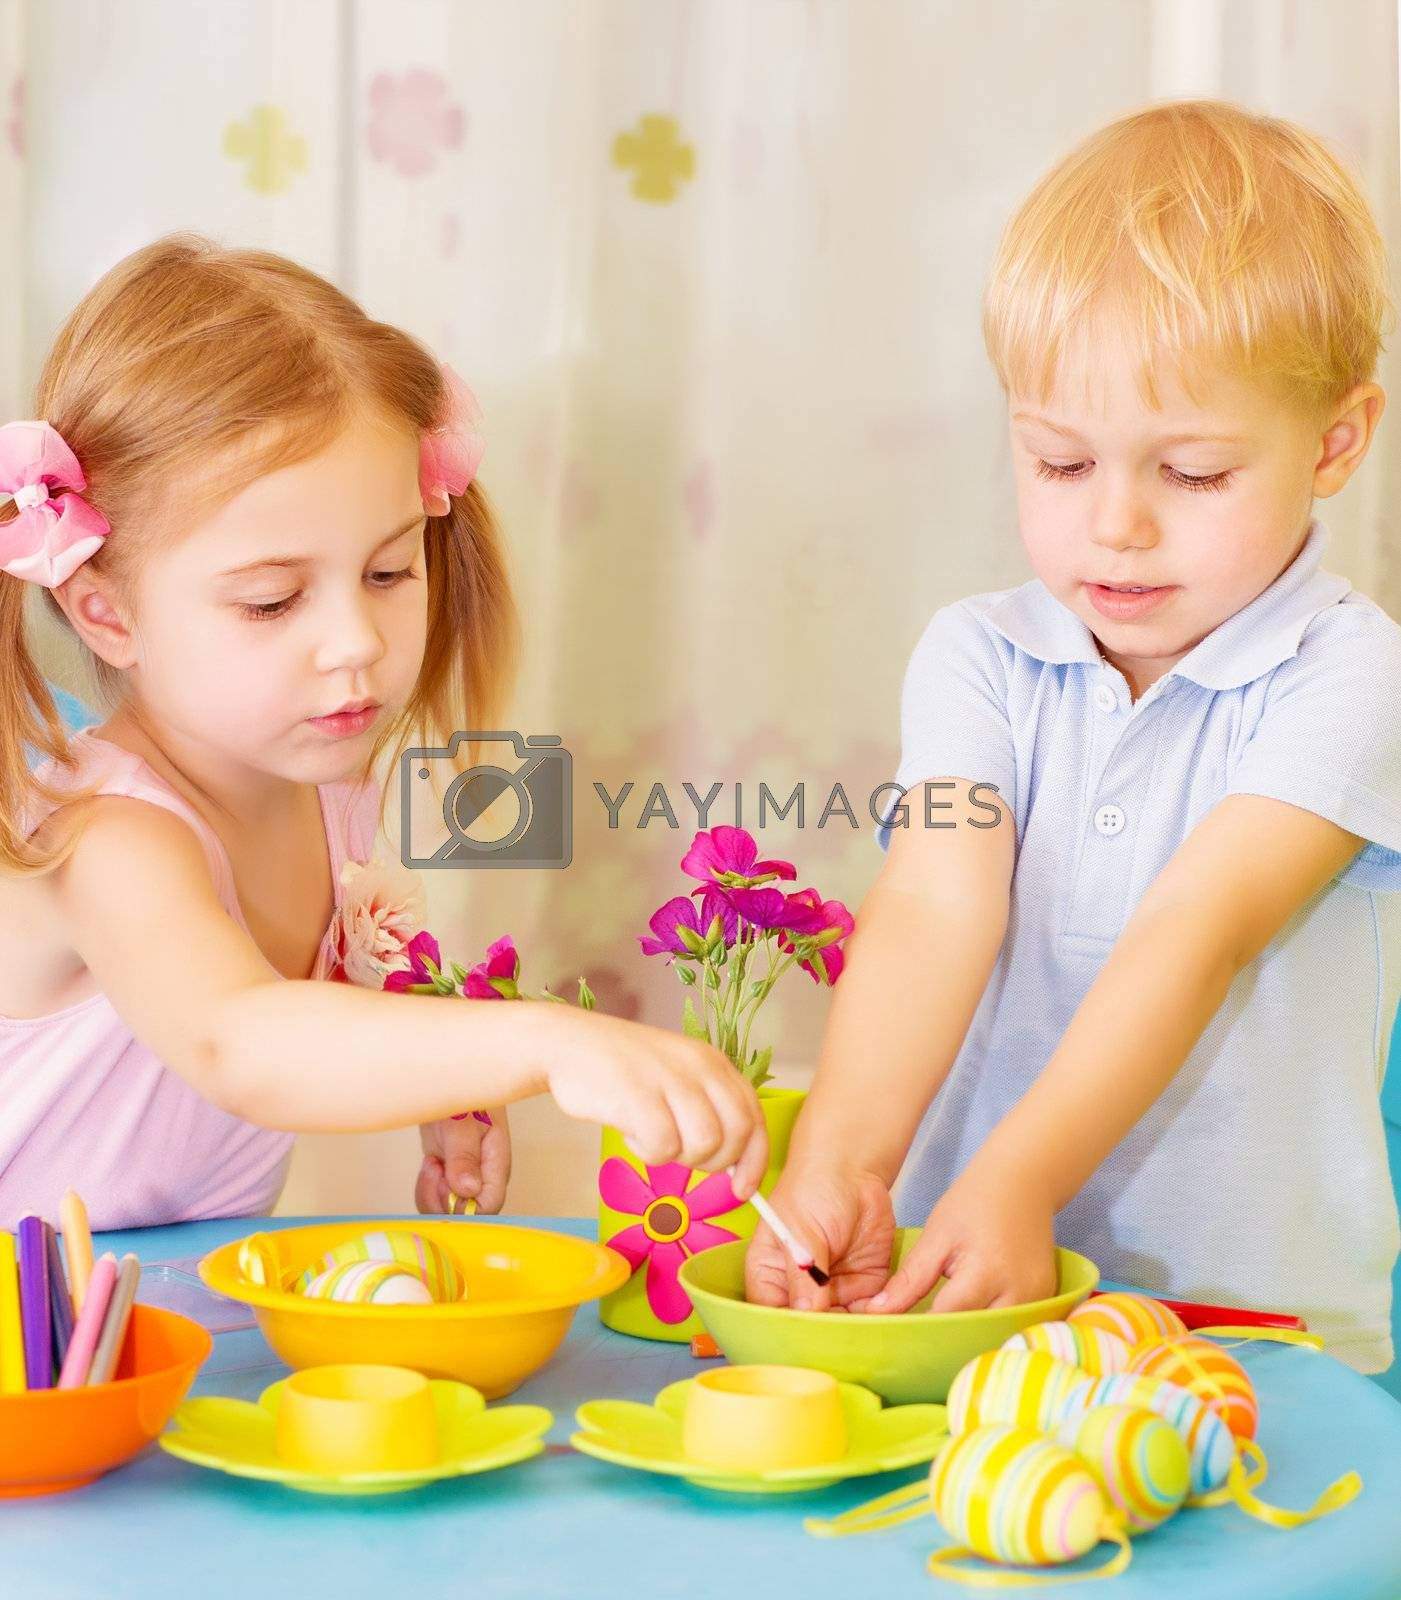 Two serious children paint Easter eggs at home, using colorful decoration, Christian holiday concept